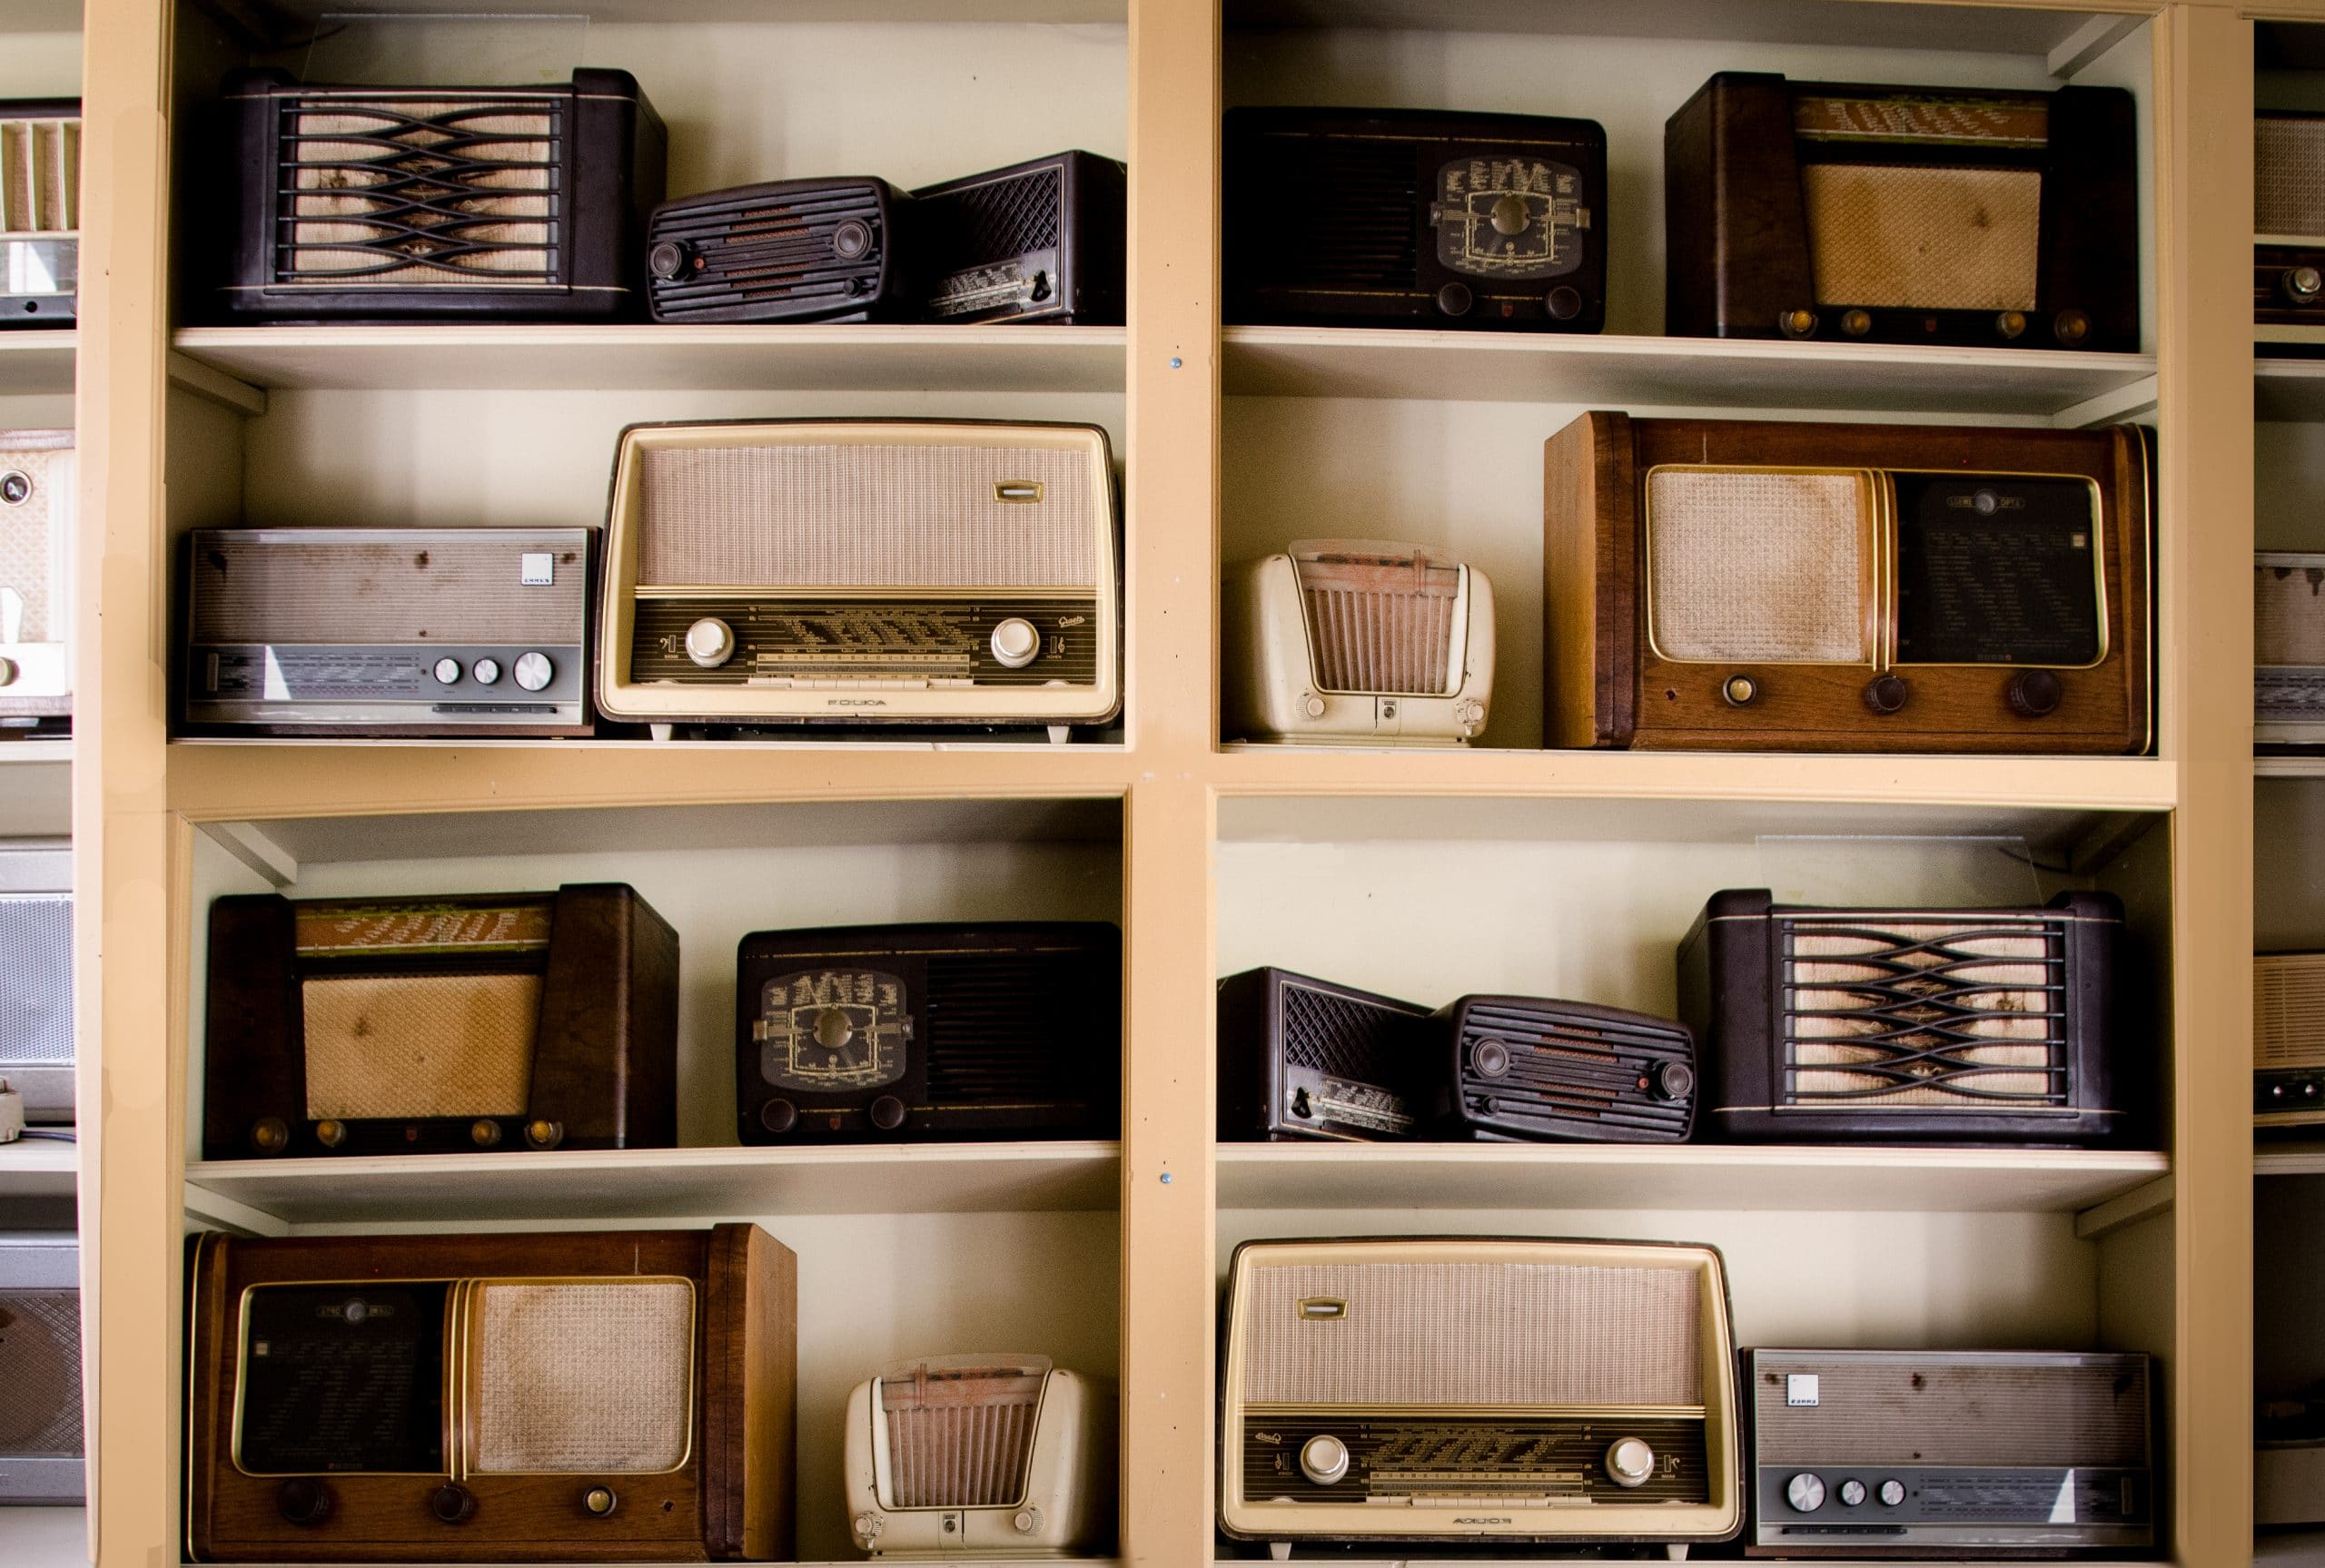 Asbestos Exposure from Vintage Products